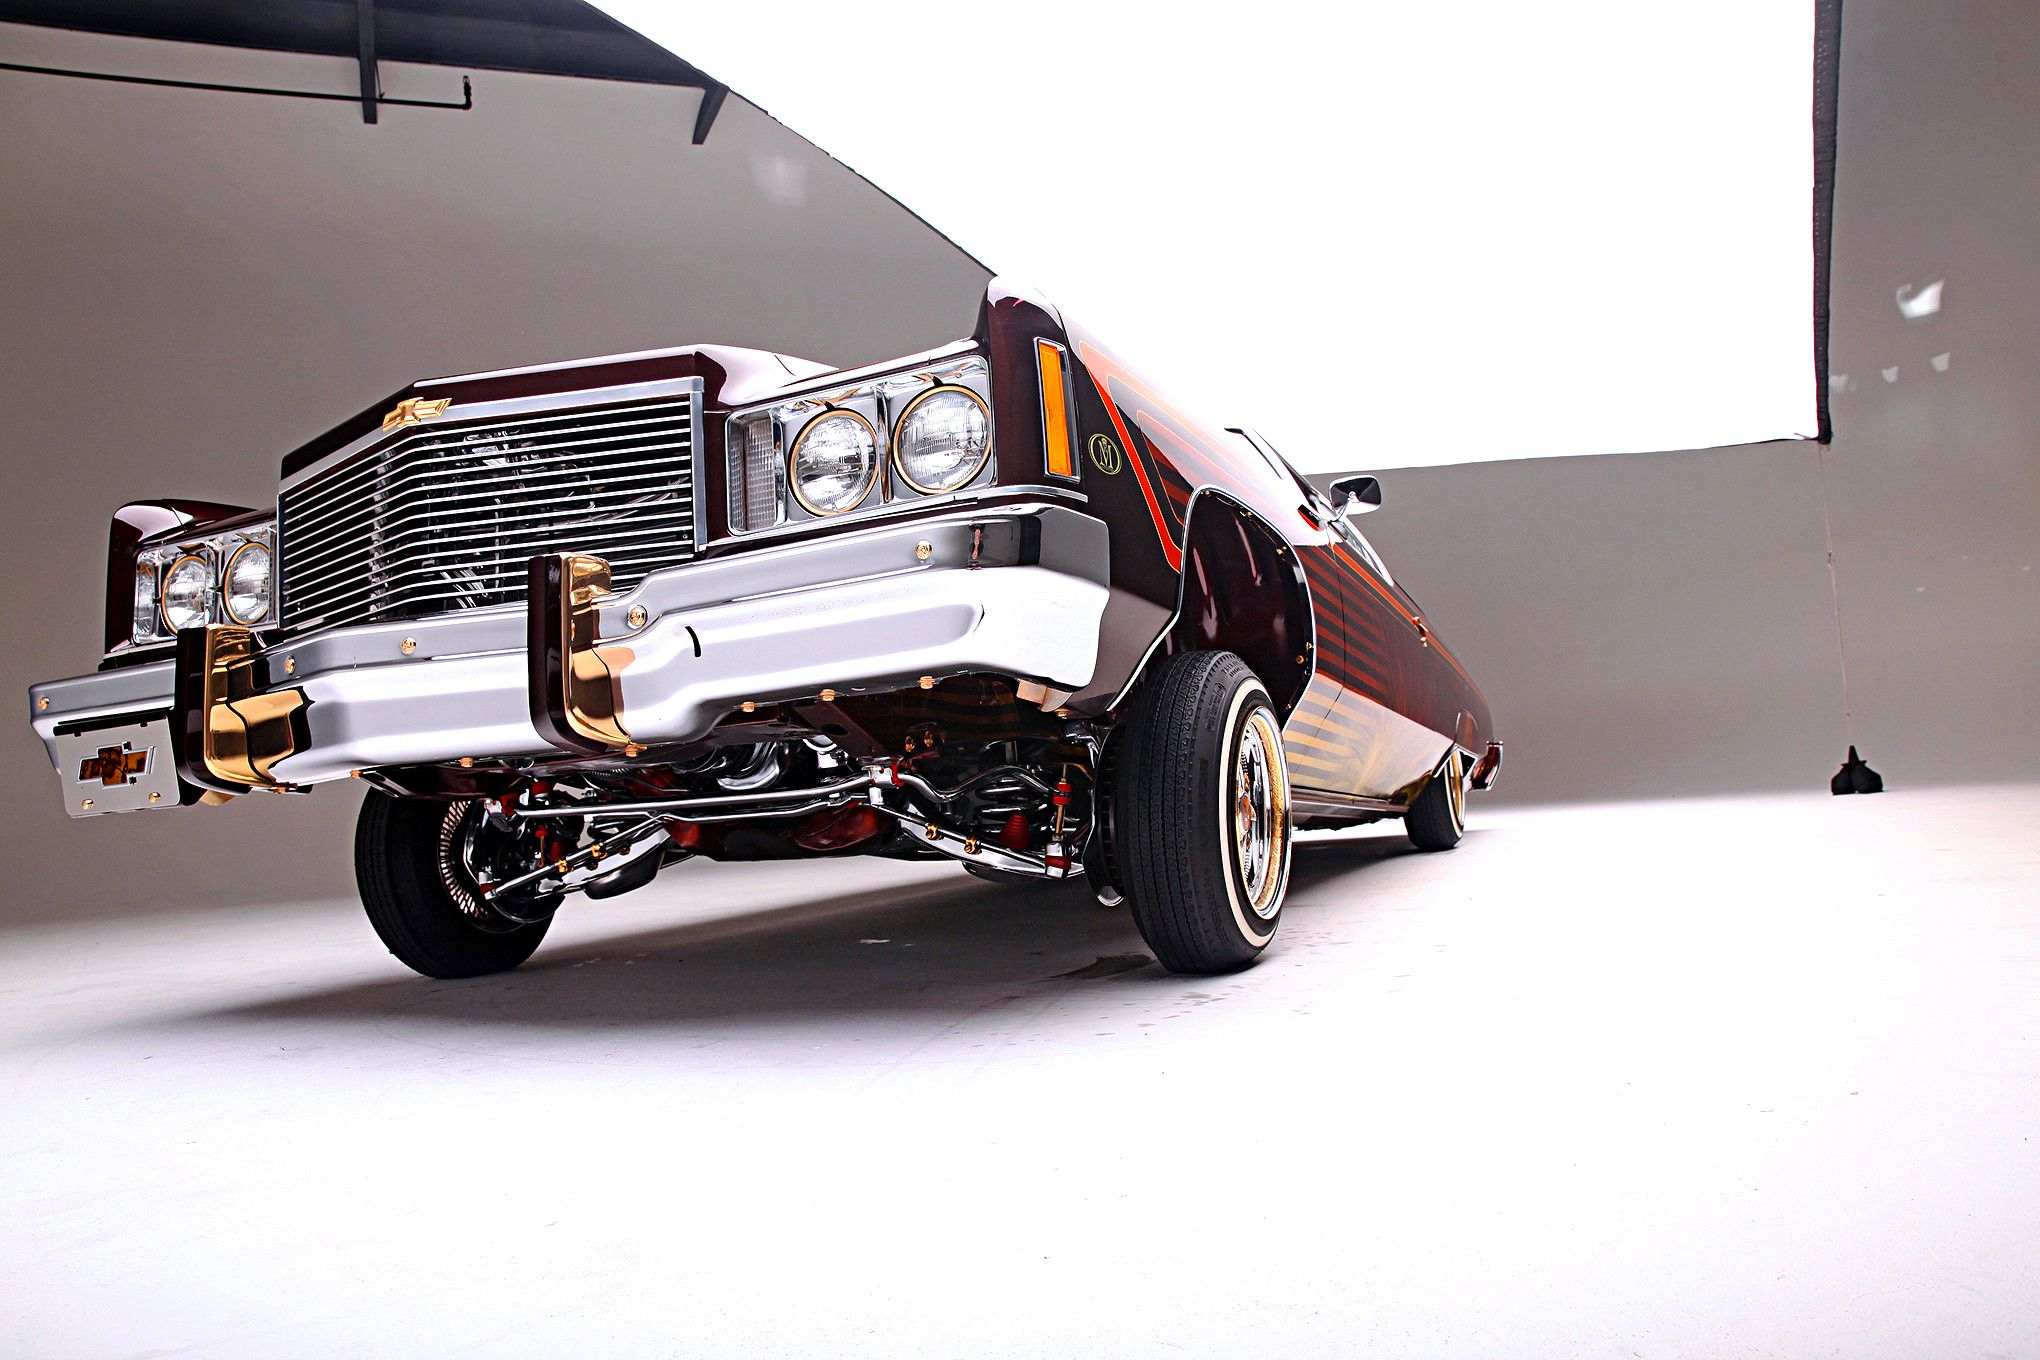 Stylistics Member, Juan Carlos Sosa always wanted to bring back lowrider styling from the '70s and what better platform to use than a '75 Impala Glasshouse.